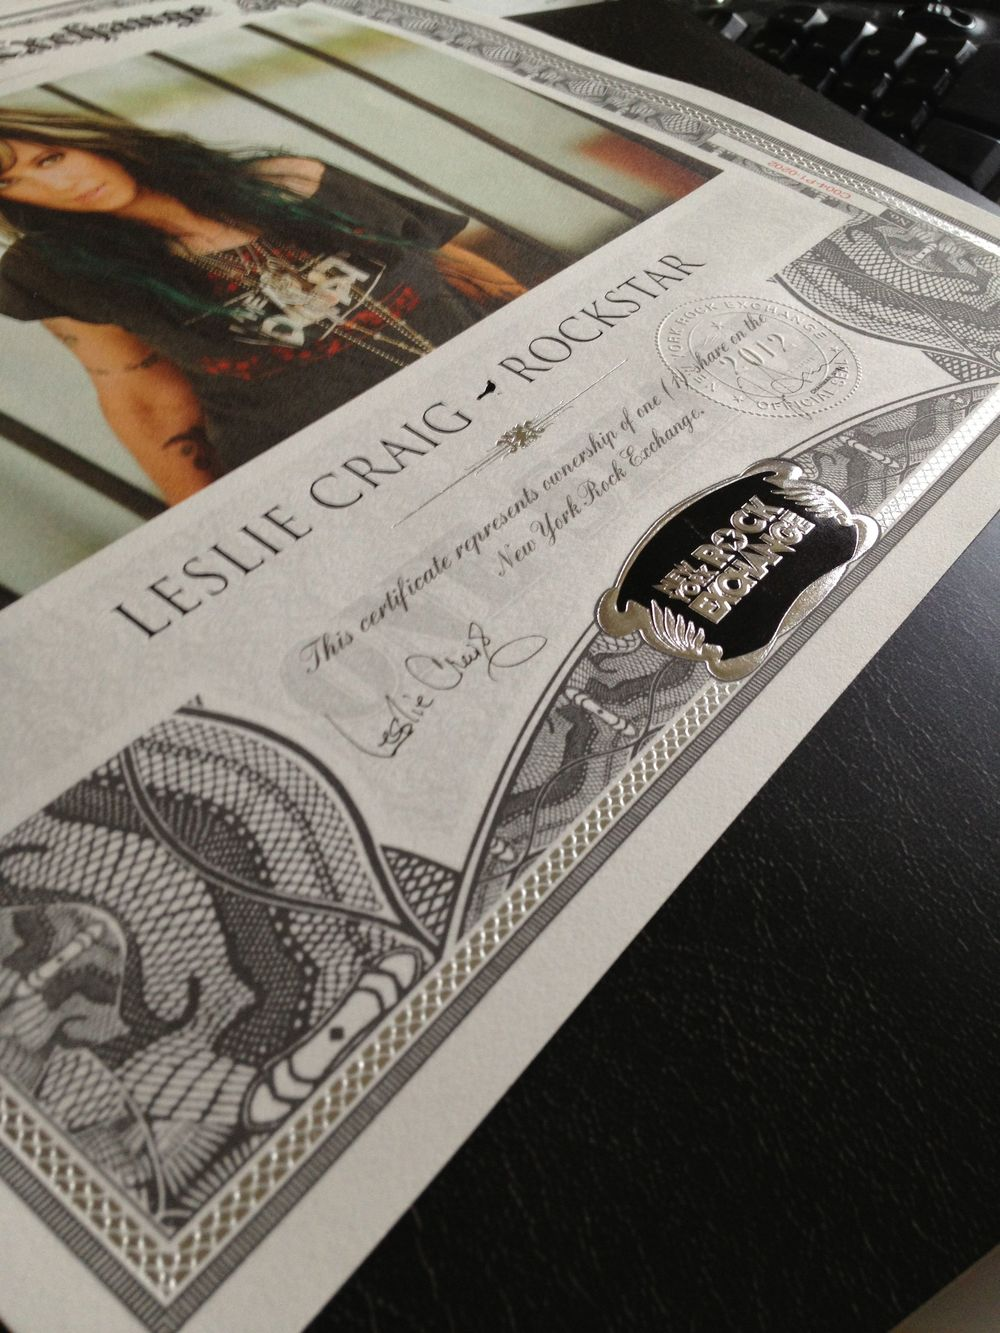 Certificates for the Gold shares are hand autographed by Chuck Billy and Eric Peterson